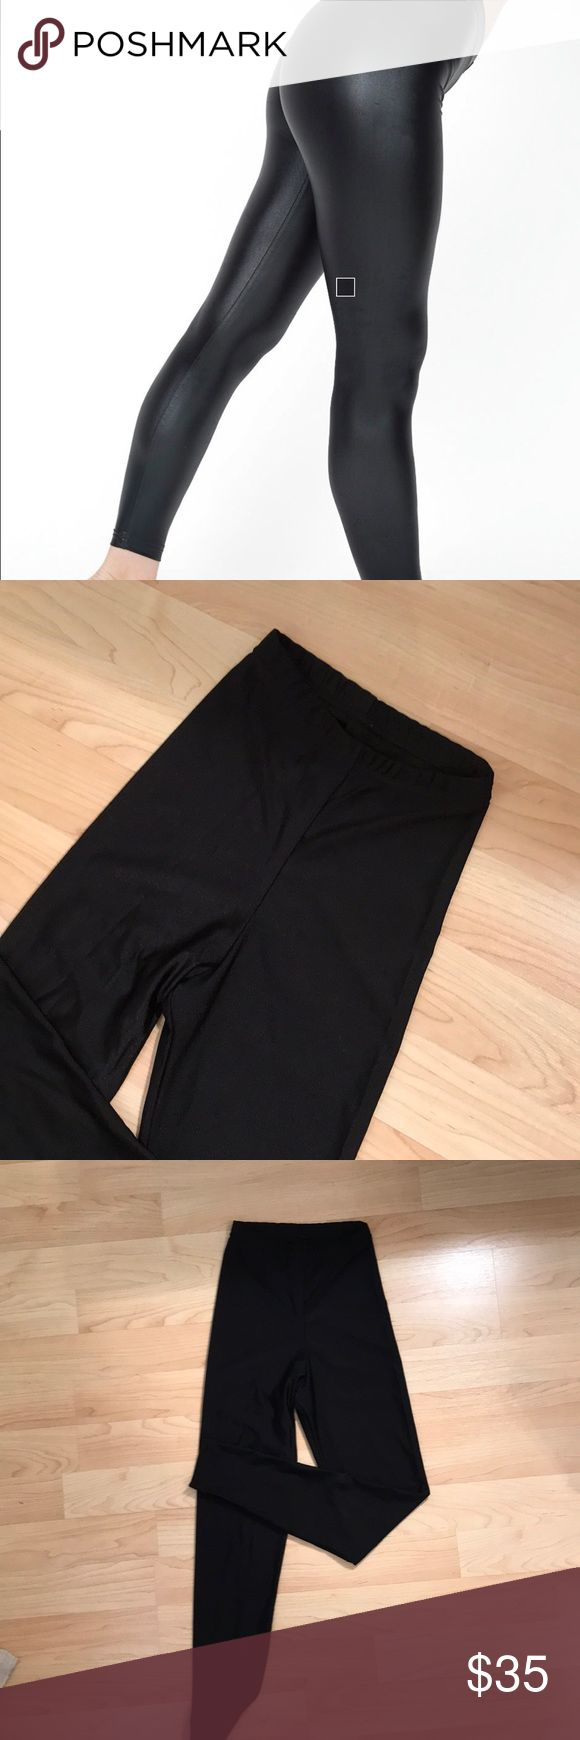 American Apparel High waisted shiny leggings High waisted shiny leggings by American apparel size XS. I LOVE these but grew out of them unfortunately. You can wear them with a big sweater and boots or even flats and they are a bit more stylish than regular leggings. They hit above the belly button. American Apparel Pants Leggings